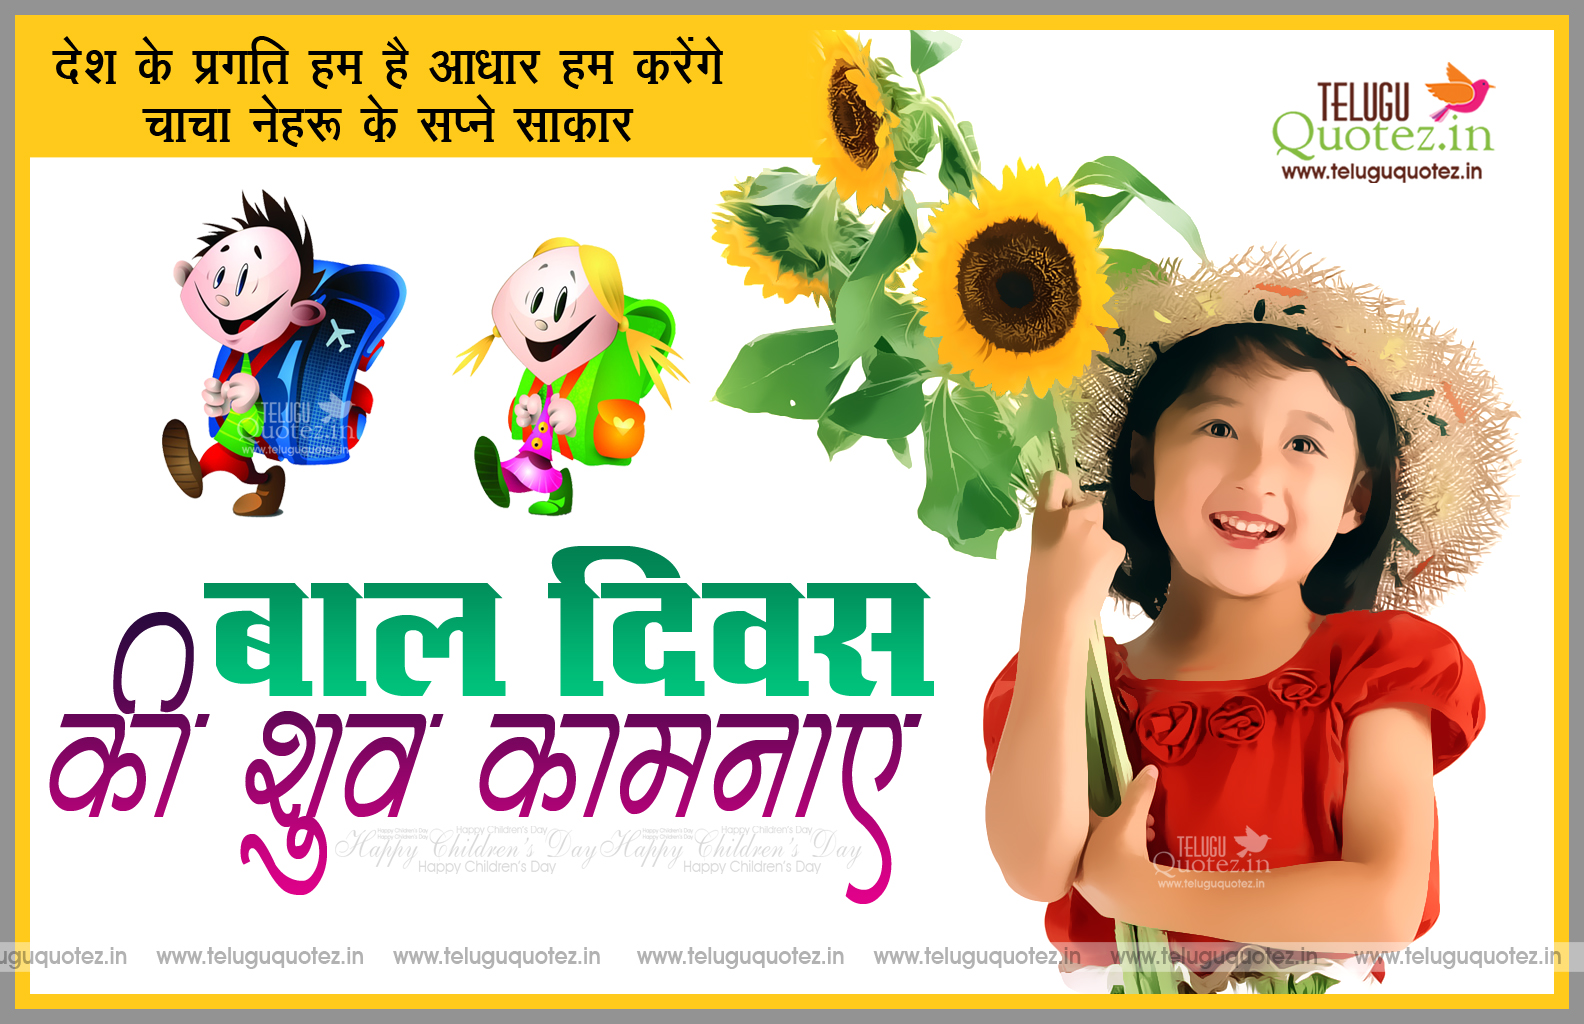 Happy Childrens Day Wishes Hd Images Hd Wallpaper